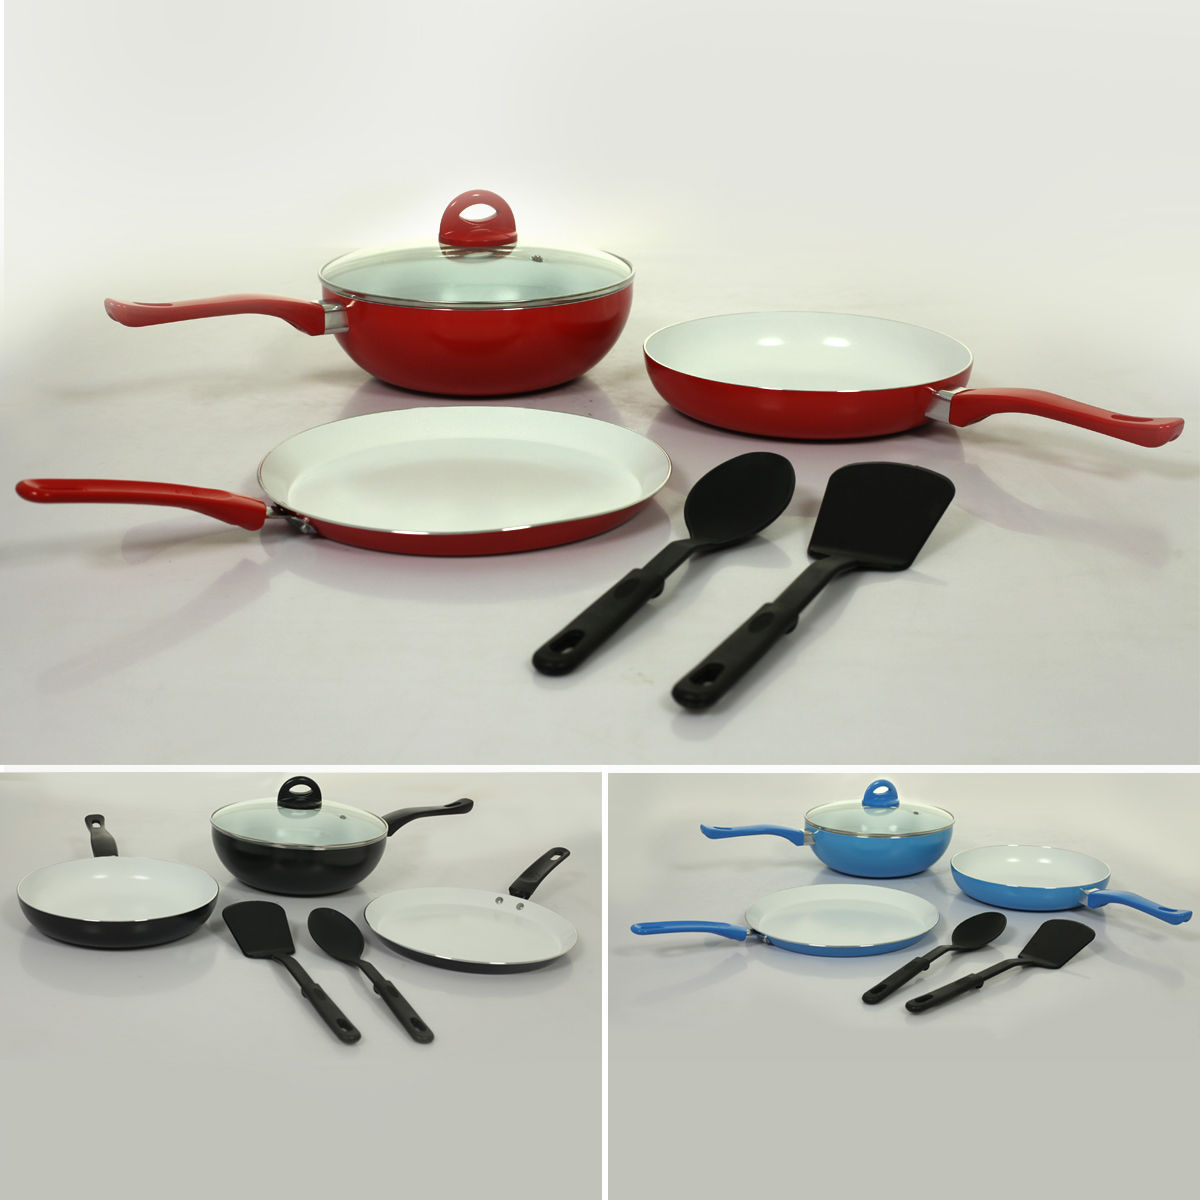 Buy 6 pcs ceramic coated colourful cookware set online at for Kitchen set royal